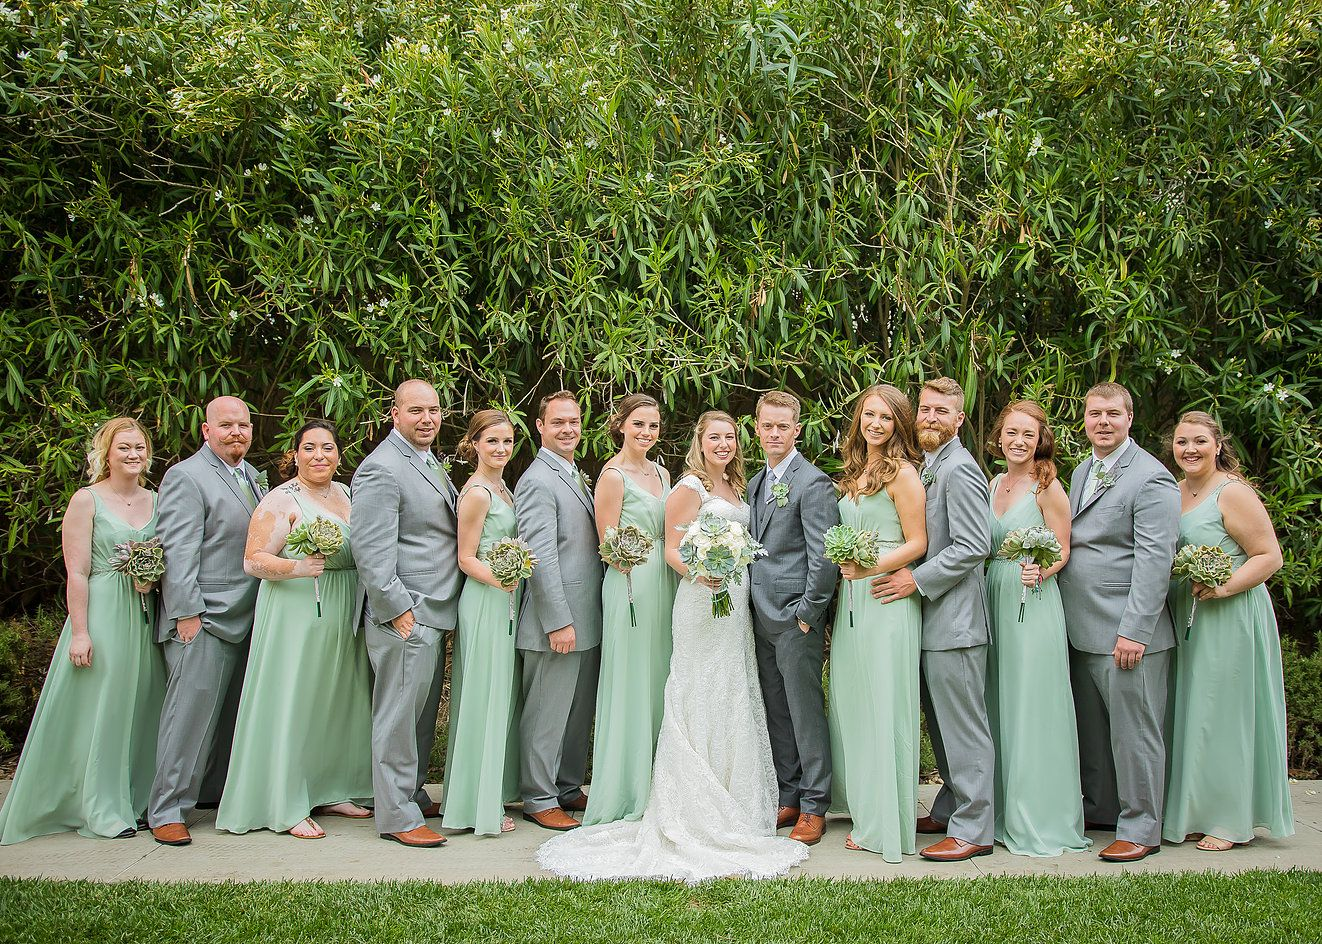 Bridal Party Grey And Mint Colors Estancia La Jolla Wedding Kim C Villa Photography San Go Photographer